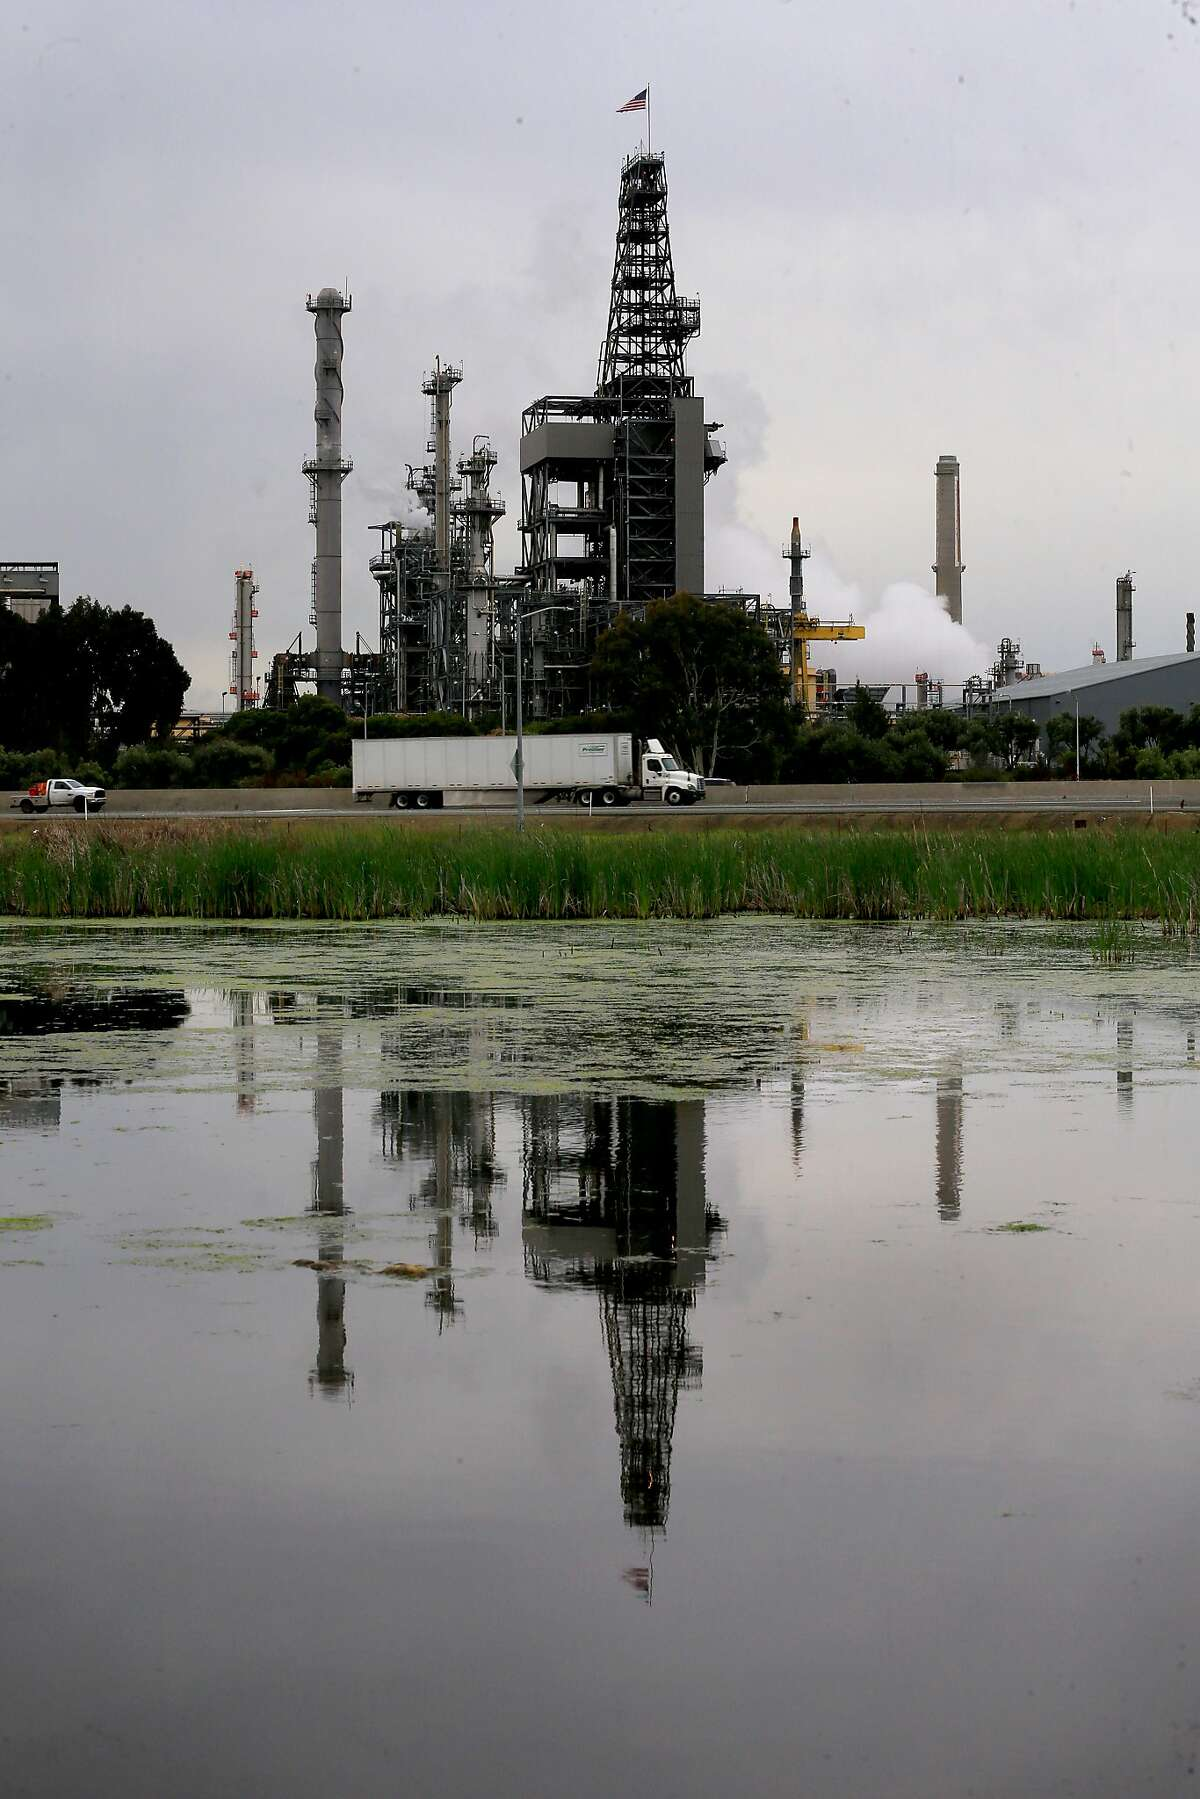 The Shell refinery in Martinez, Calif., as seen on Wed. April 18, 2018.